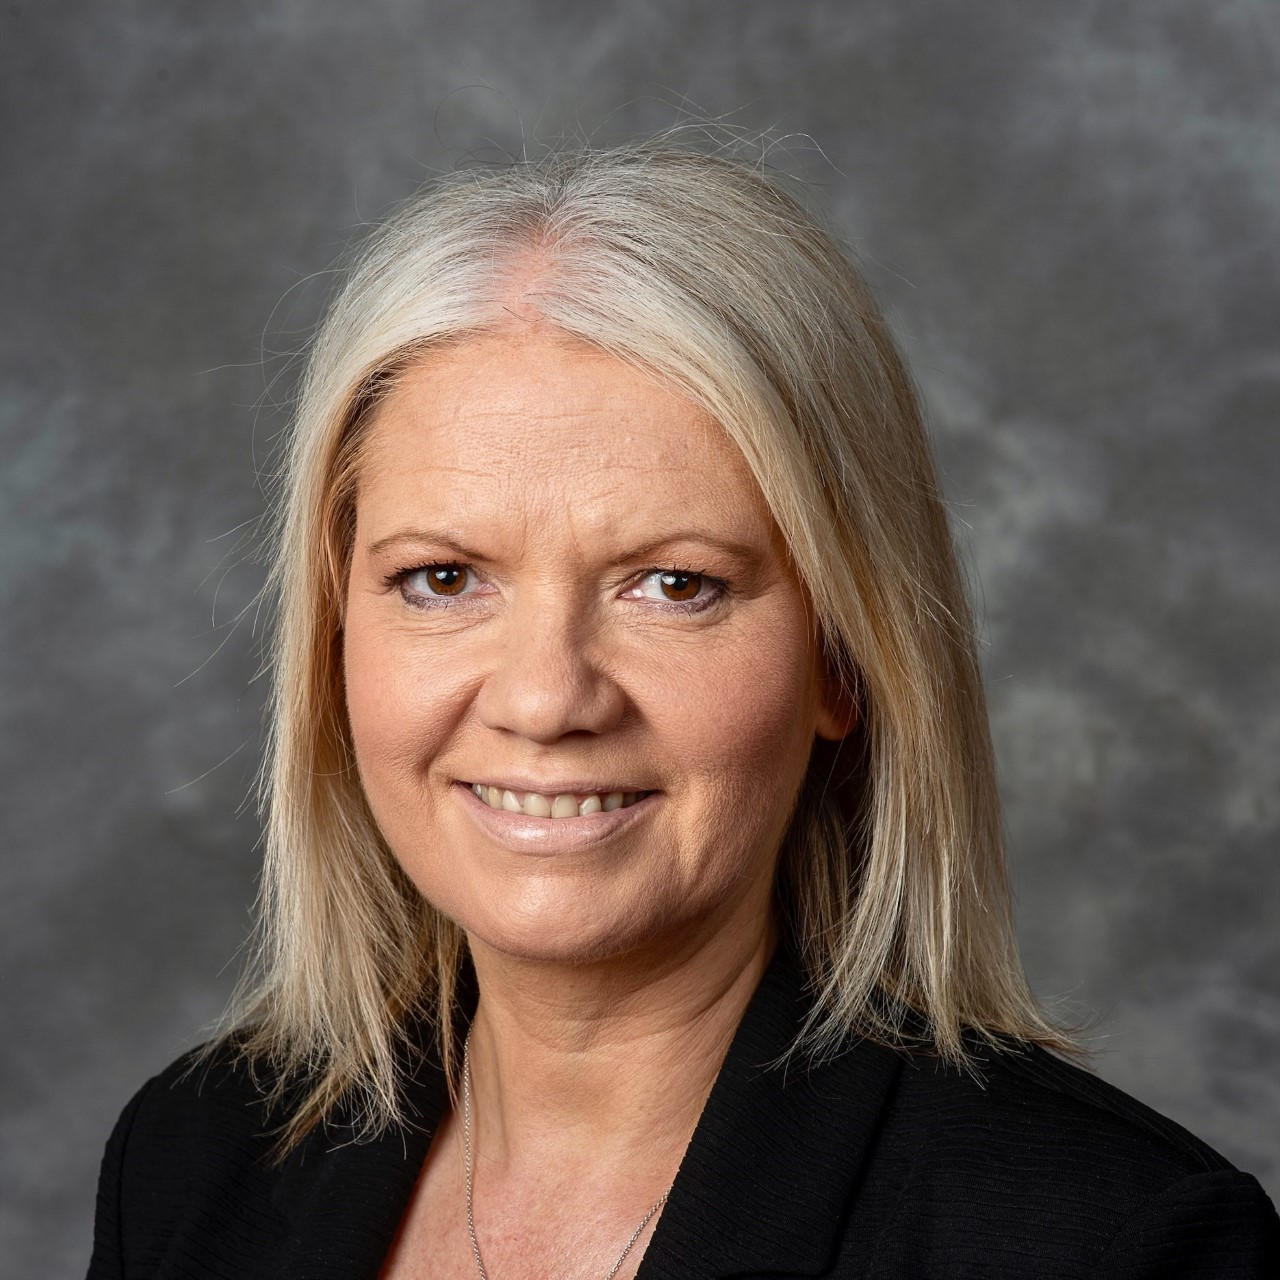 A new Chief Executive for Pendle Council